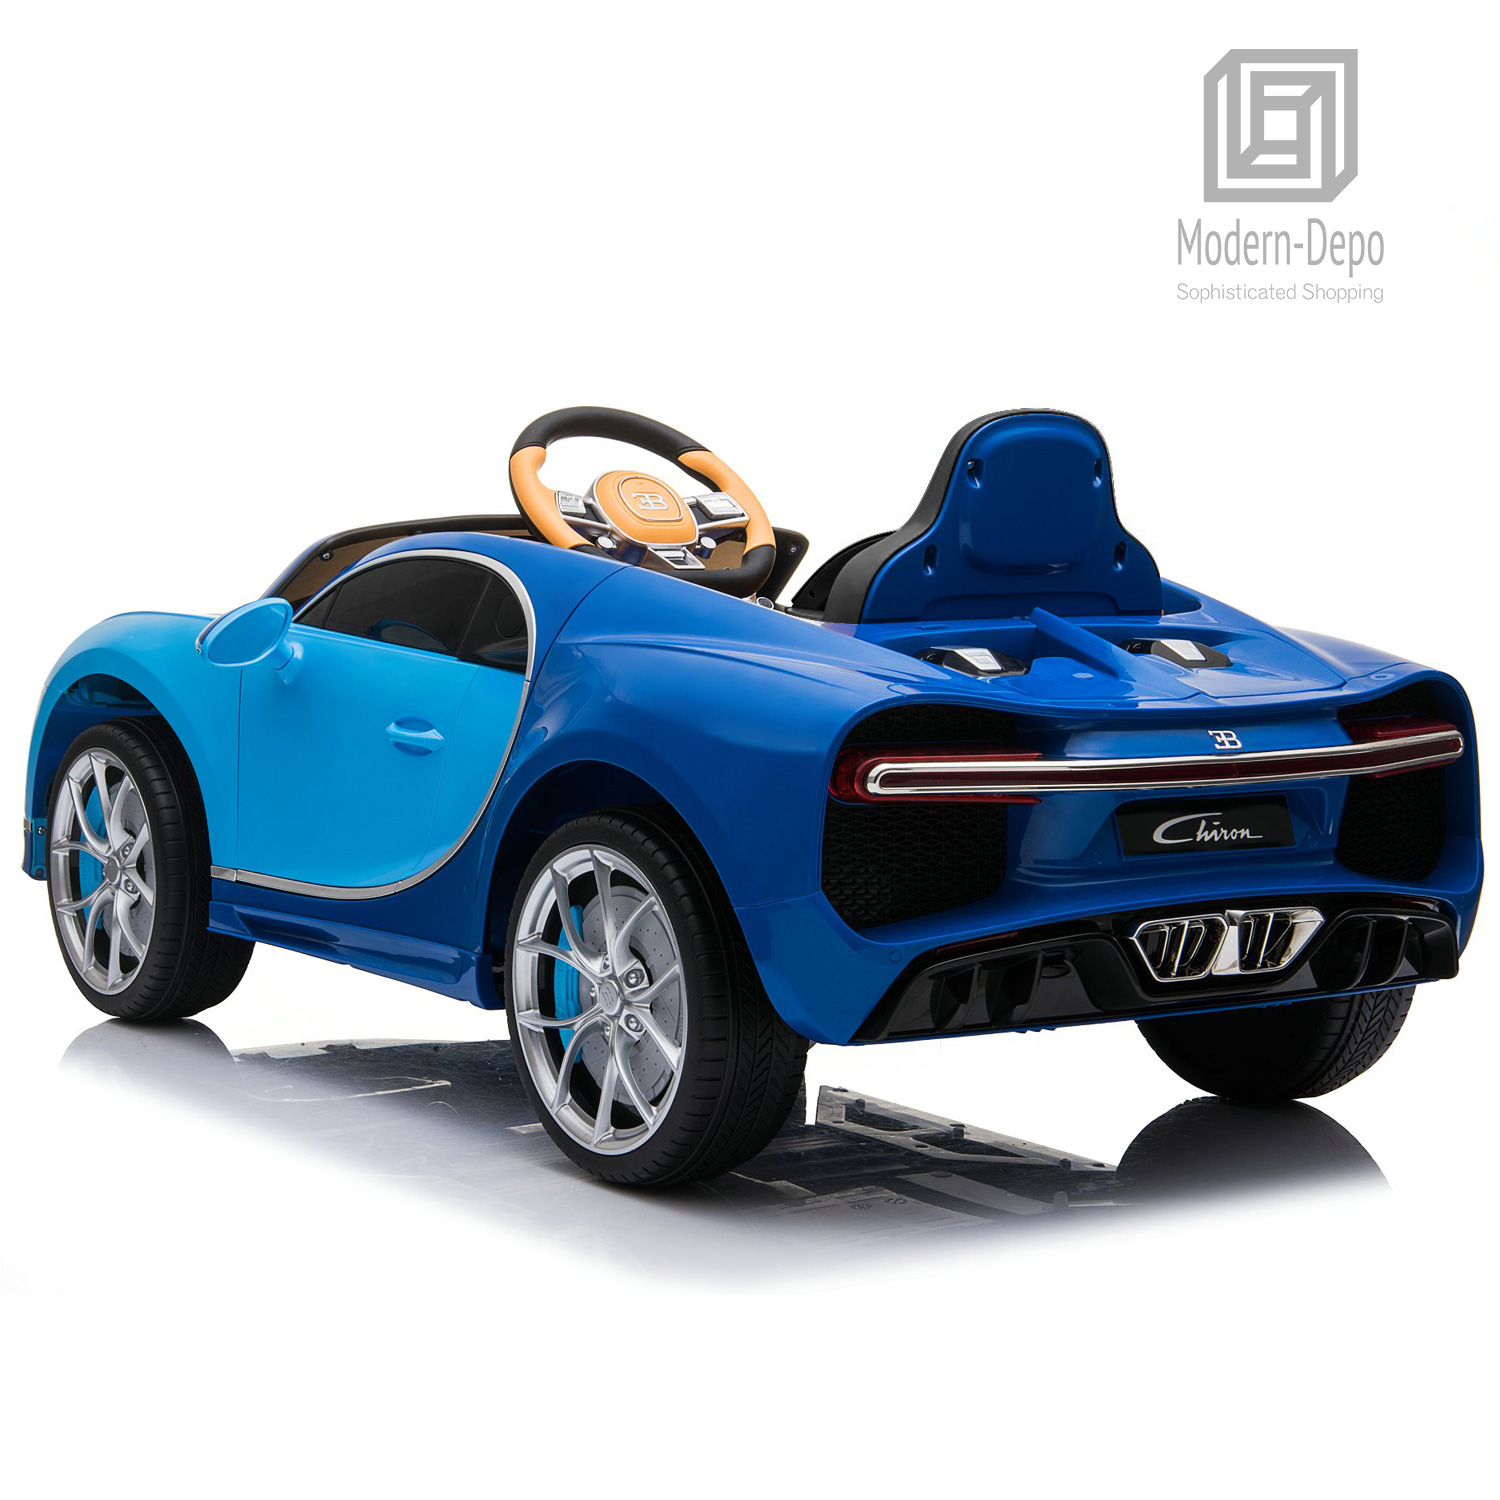 Bugatti-Chiron-12V-Kids-Ride-On-Car-with-Remote-Control-High-Speed-Motor miniature 18